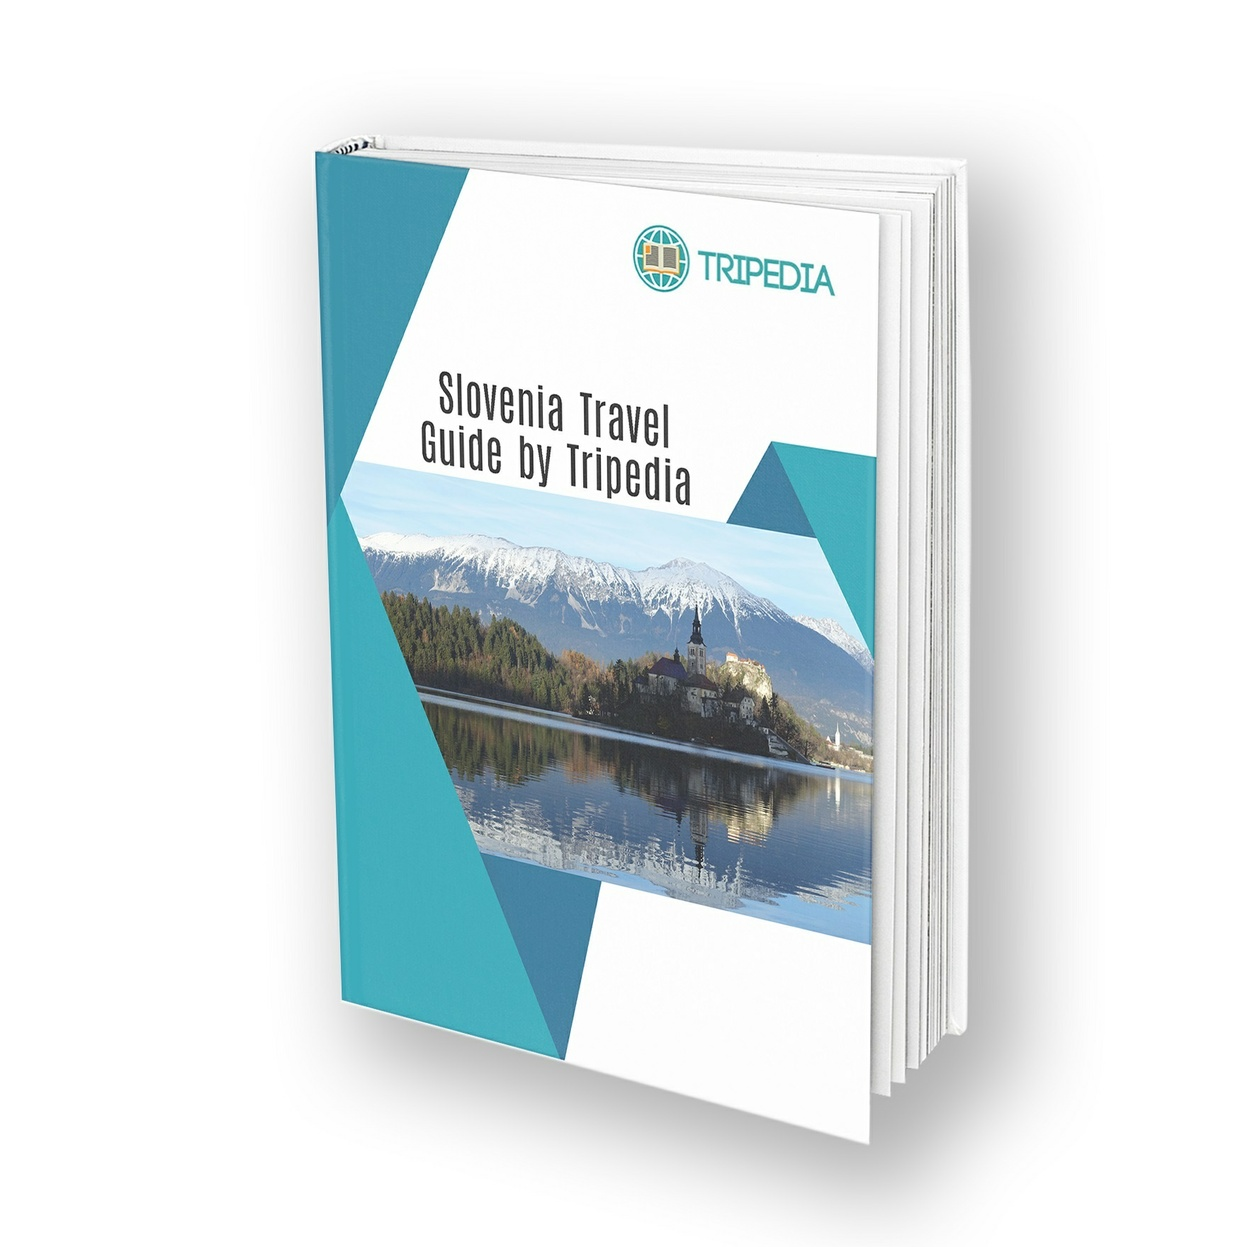 Slovenia travel guide by Tripedia